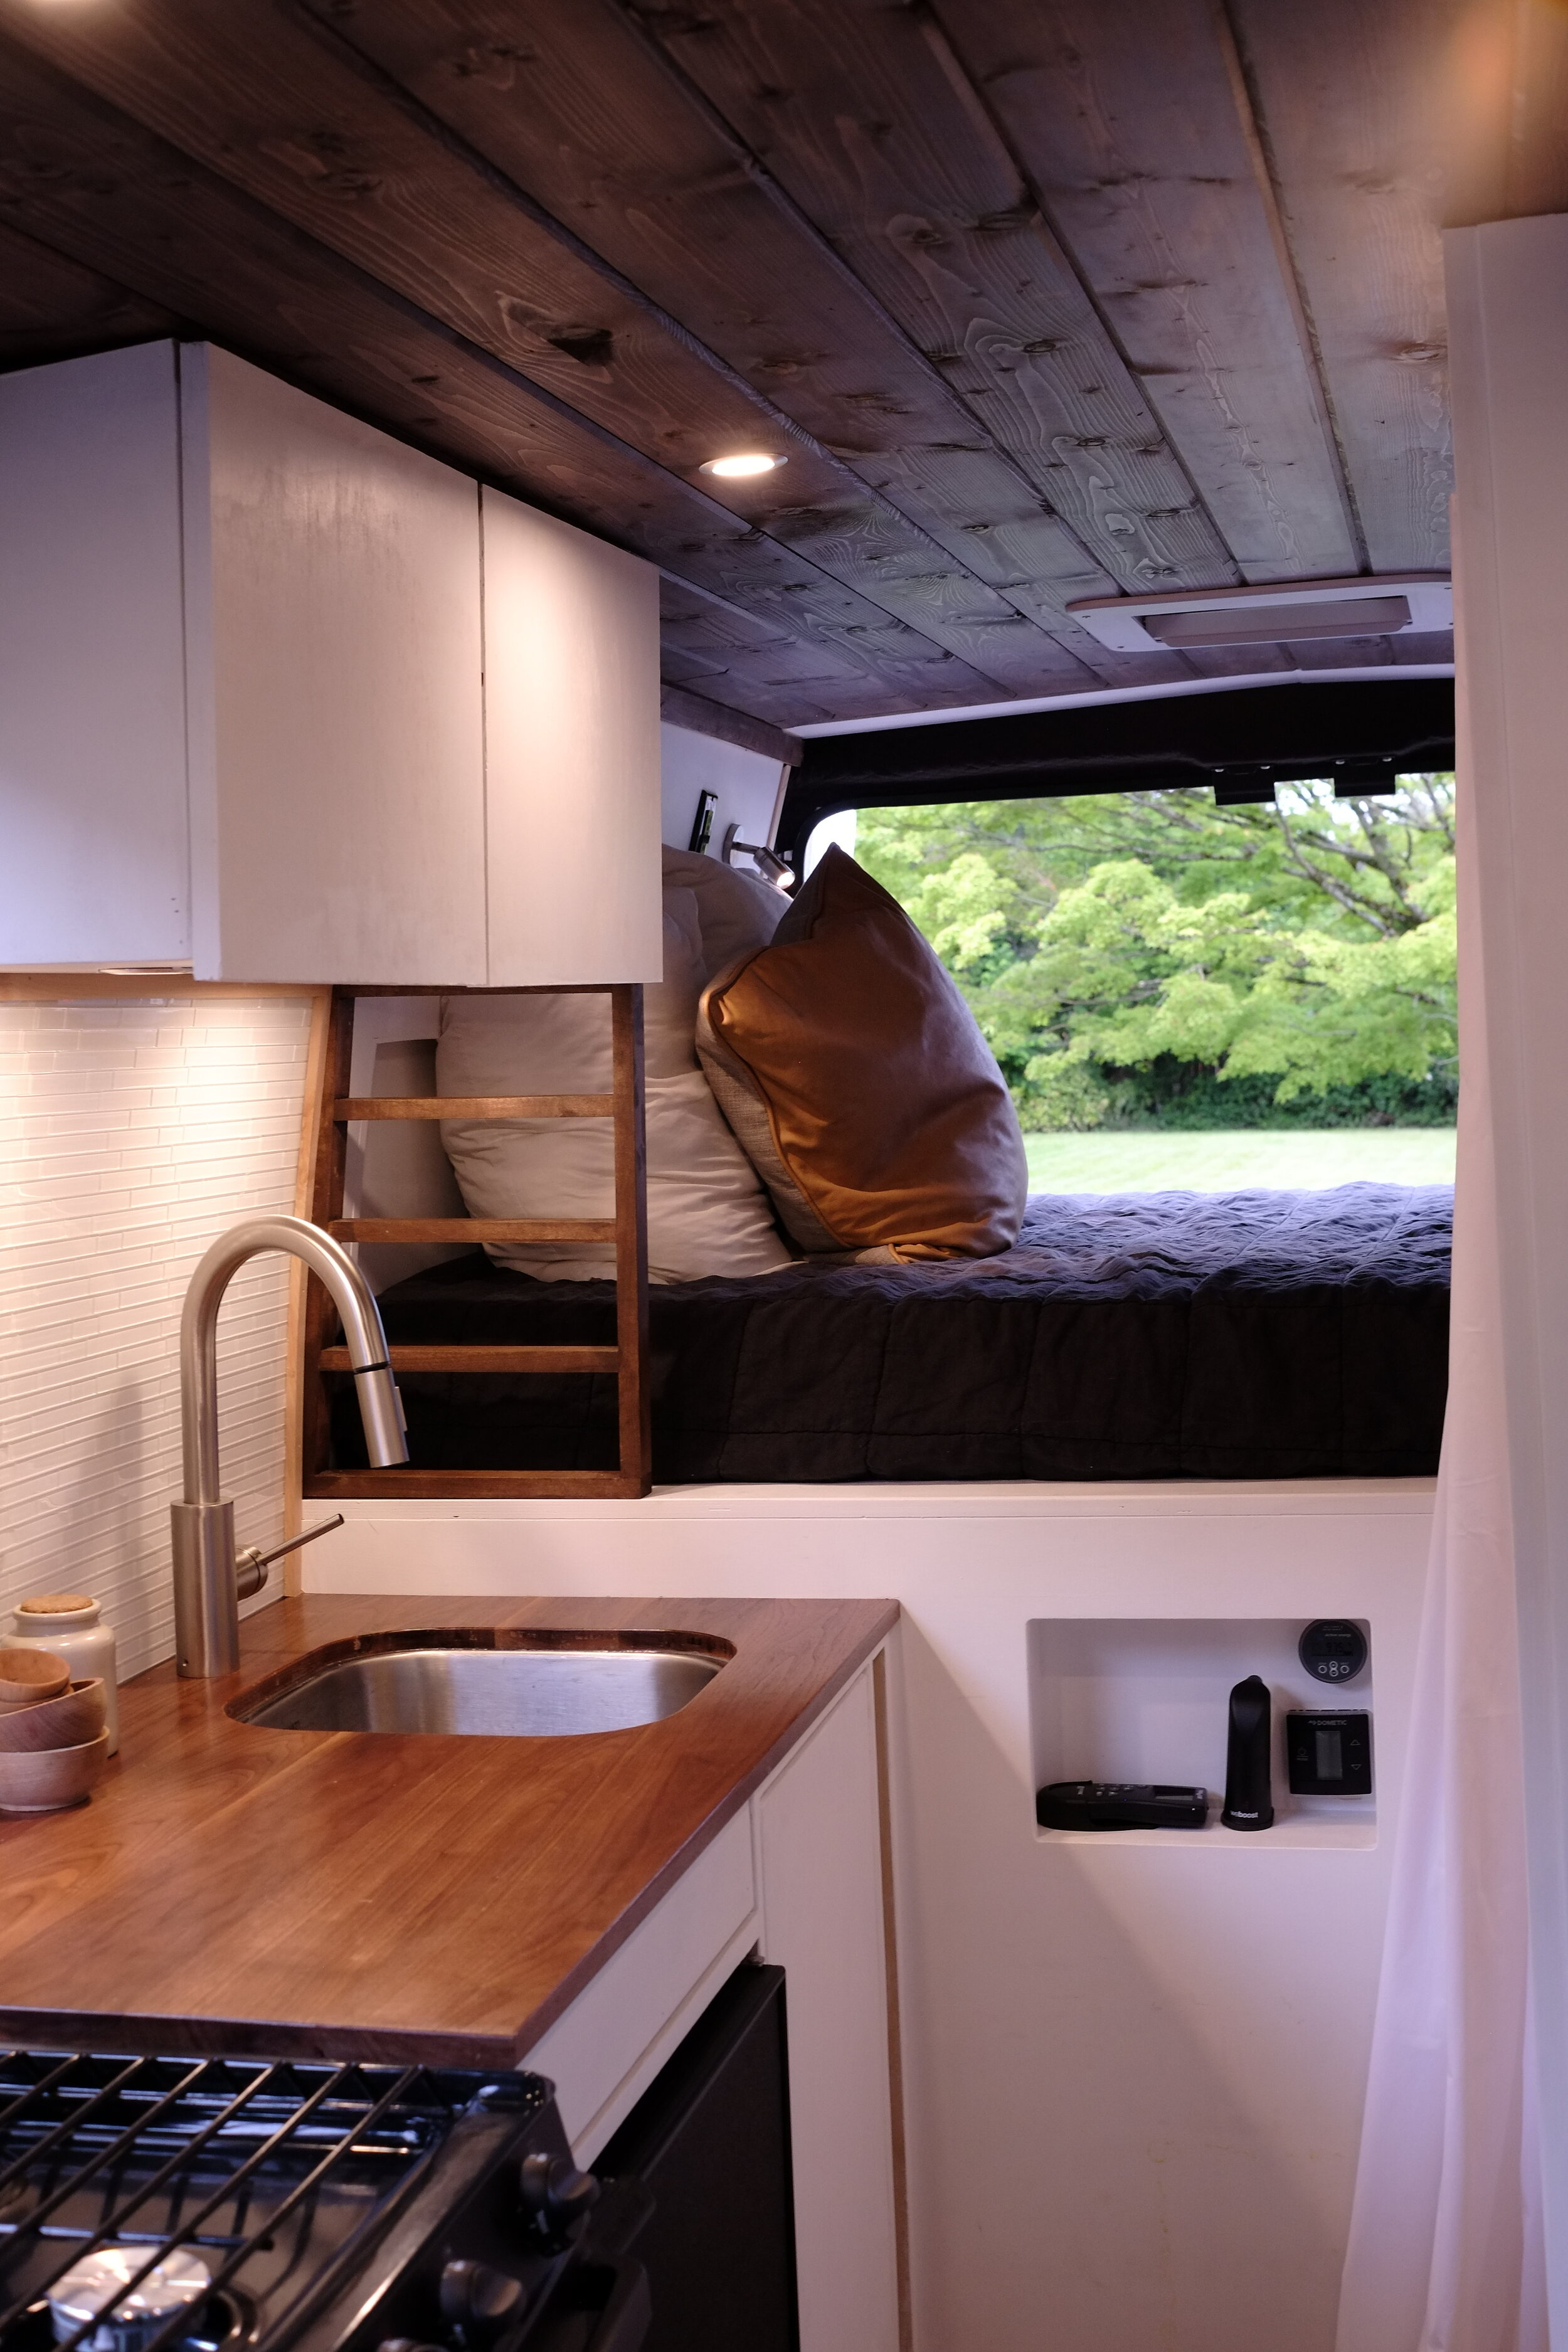 Walnut and White van conversion